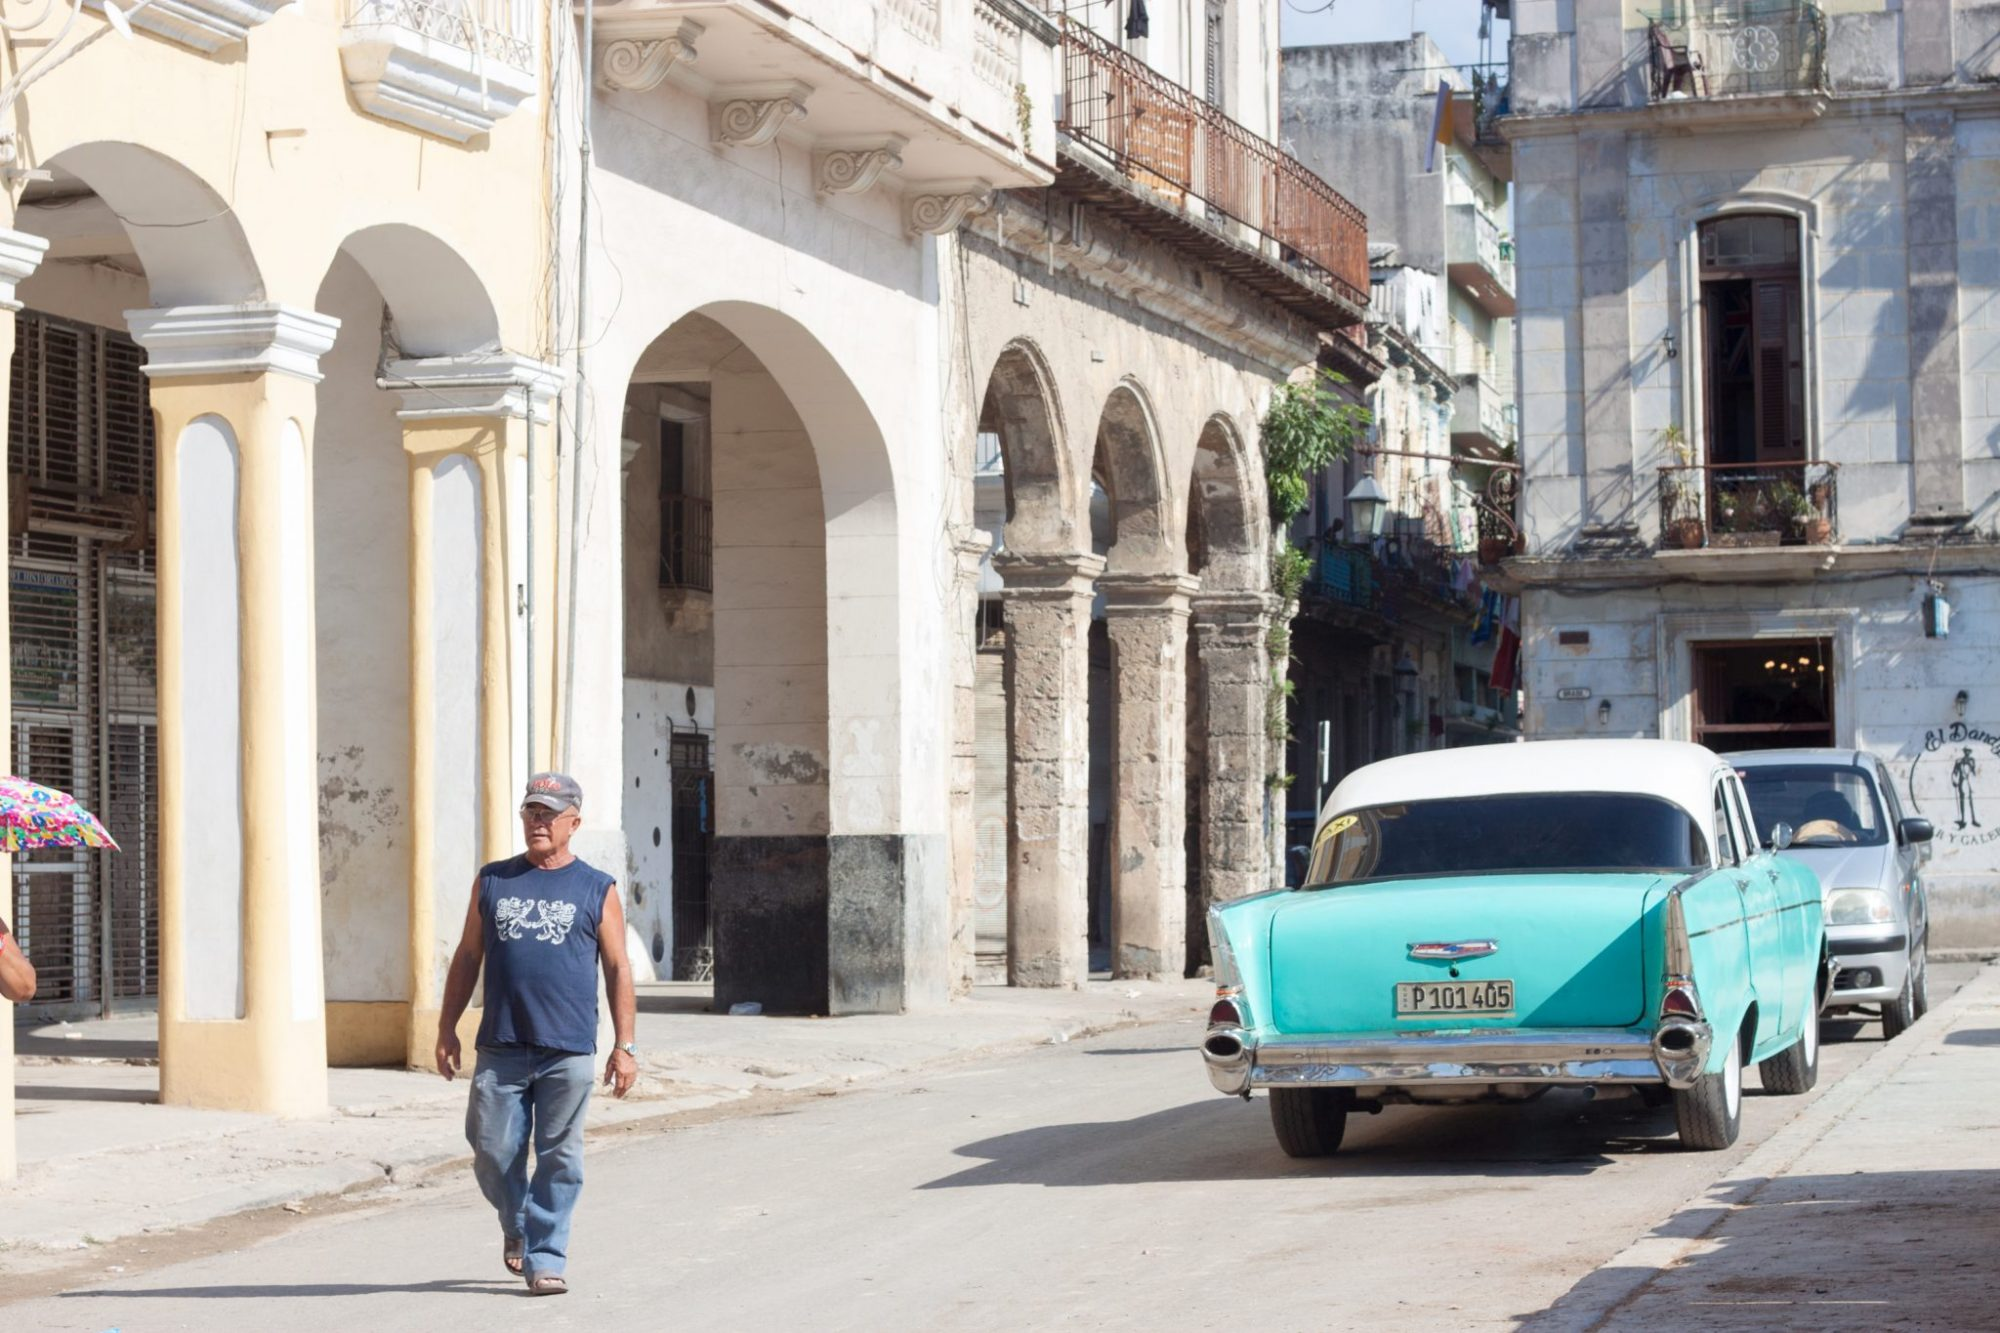 everything you need to know about traveling to cuba, what you need to know to travel to cuba, how to travel to cuba, cuba travel laws, how to travel to cuba, what do you need ot do to travel to cuba, tourism in cuba, traveling to cuba, cuba travel trips, the truth about cuba